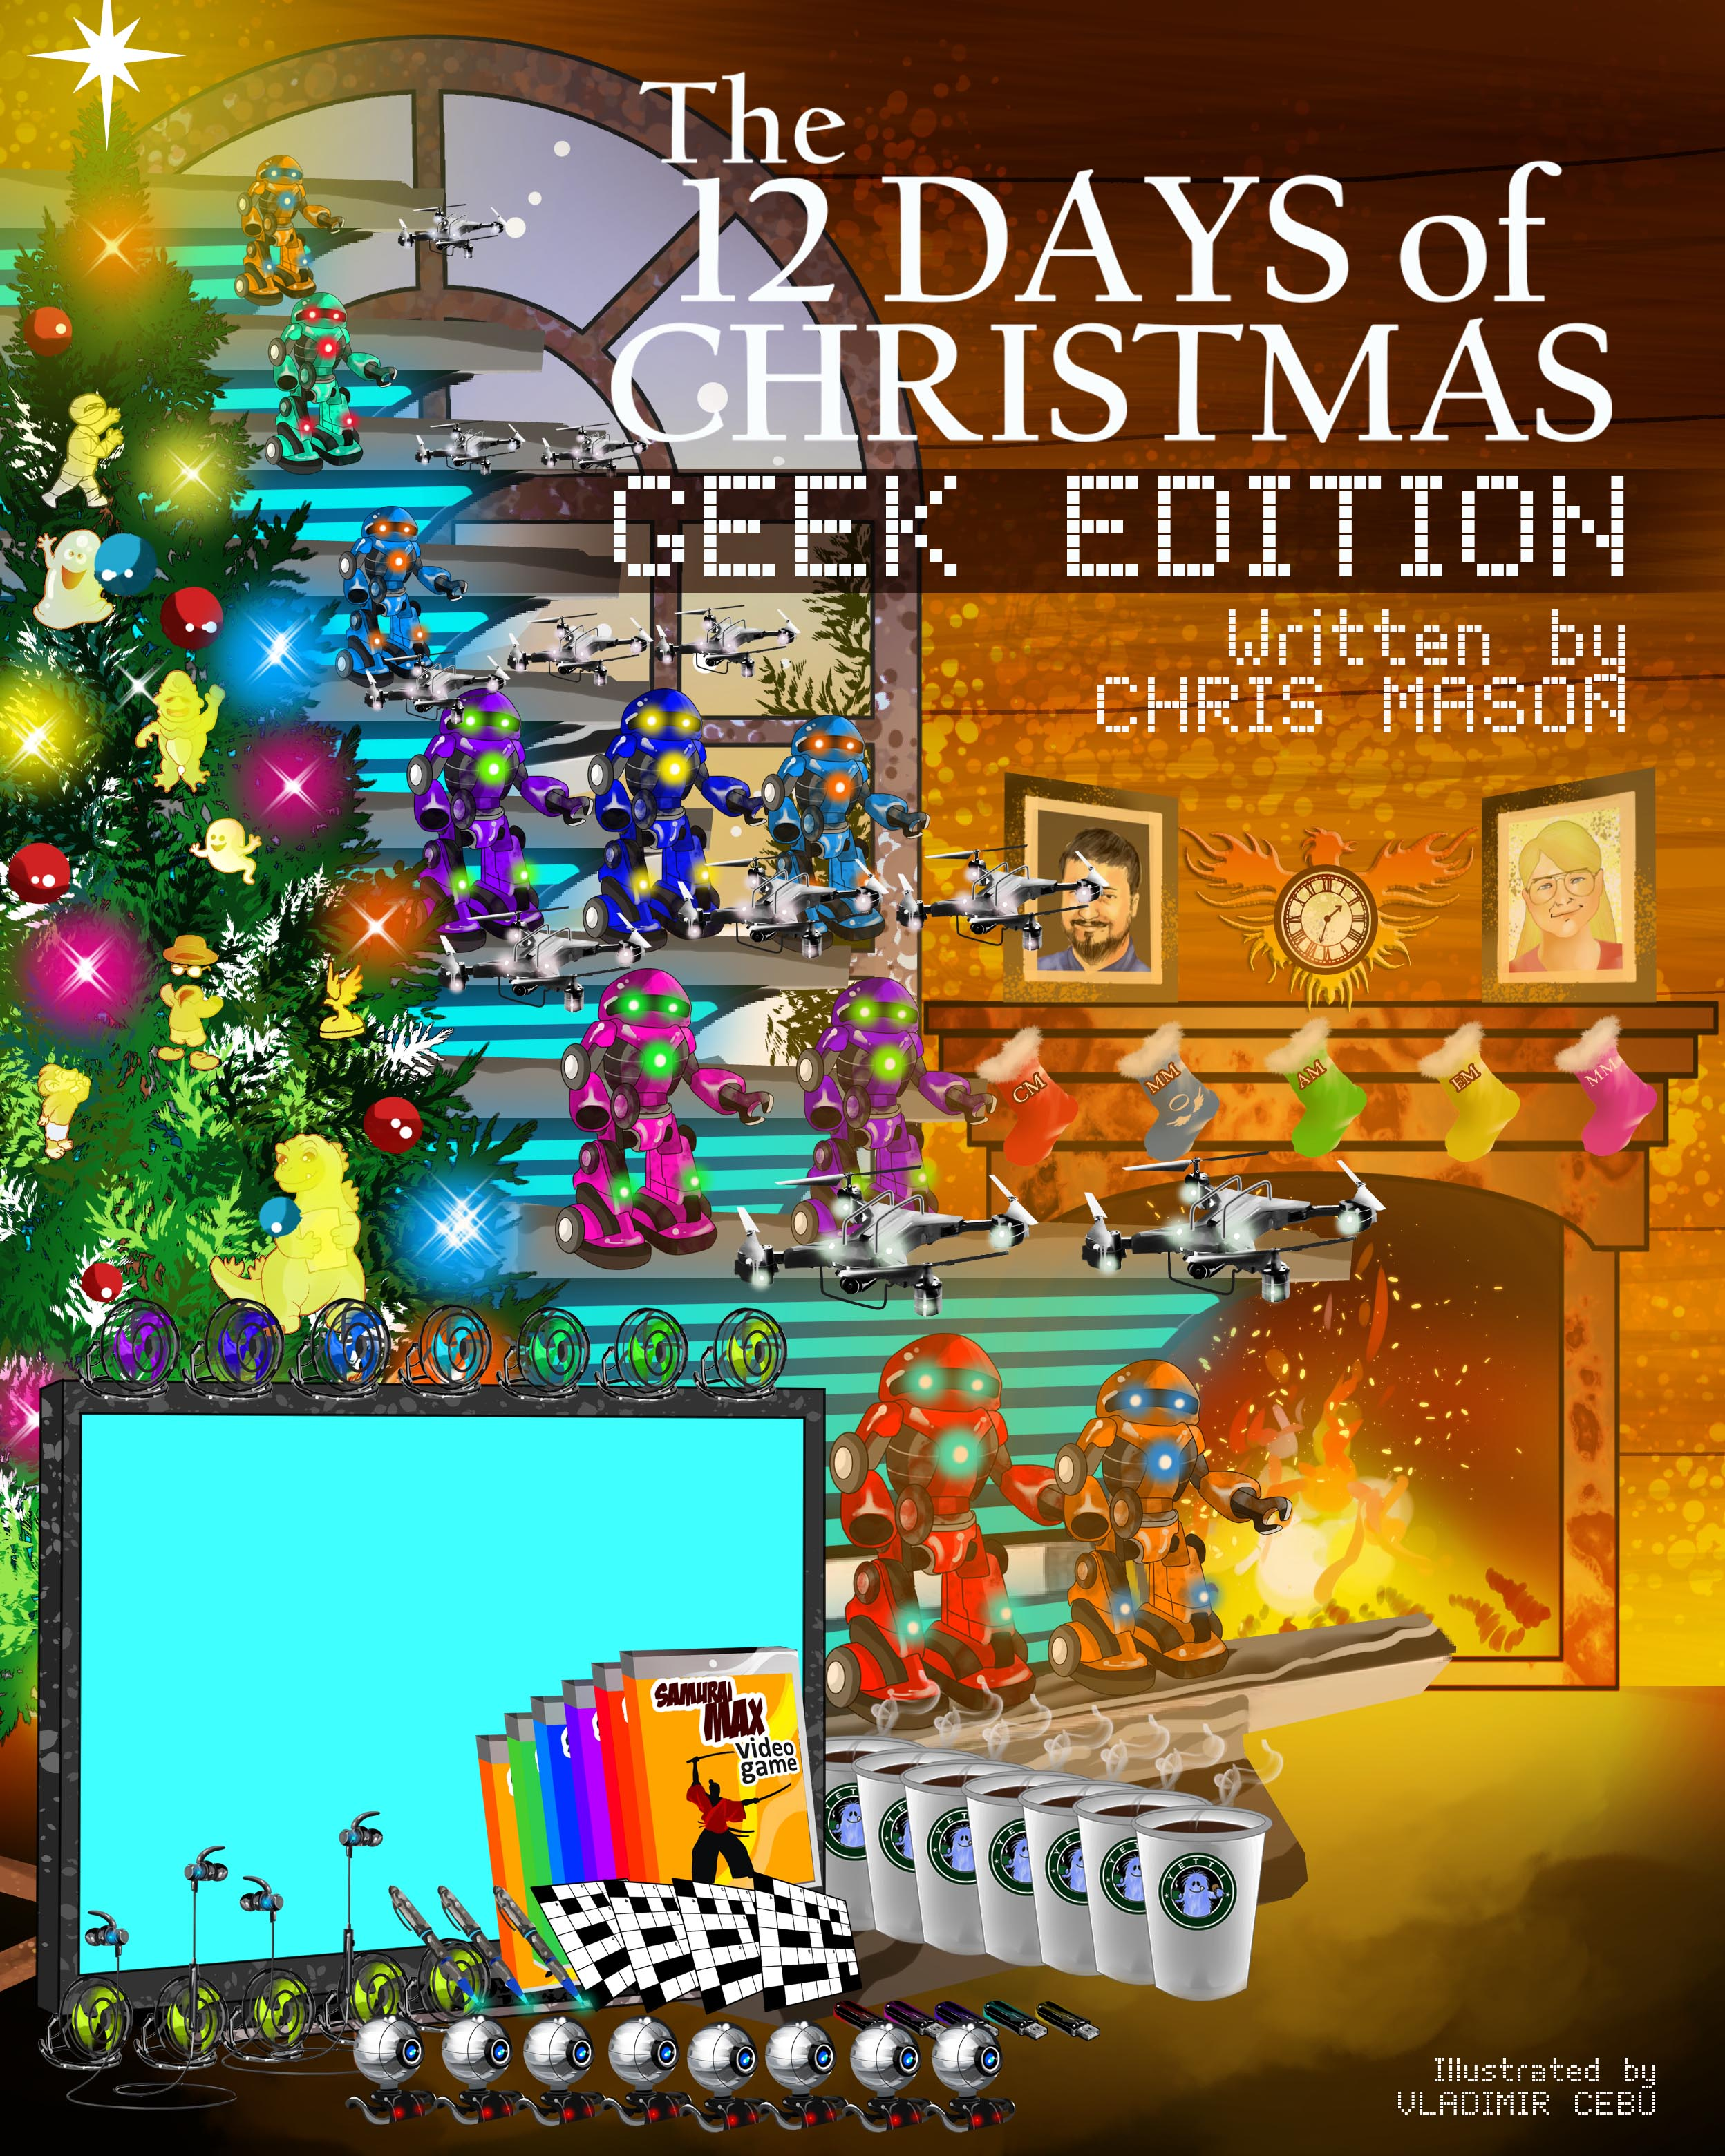 Geek Christmas.The 12 Days Of Christmas Geek Edition An Ebook By Chris Mason